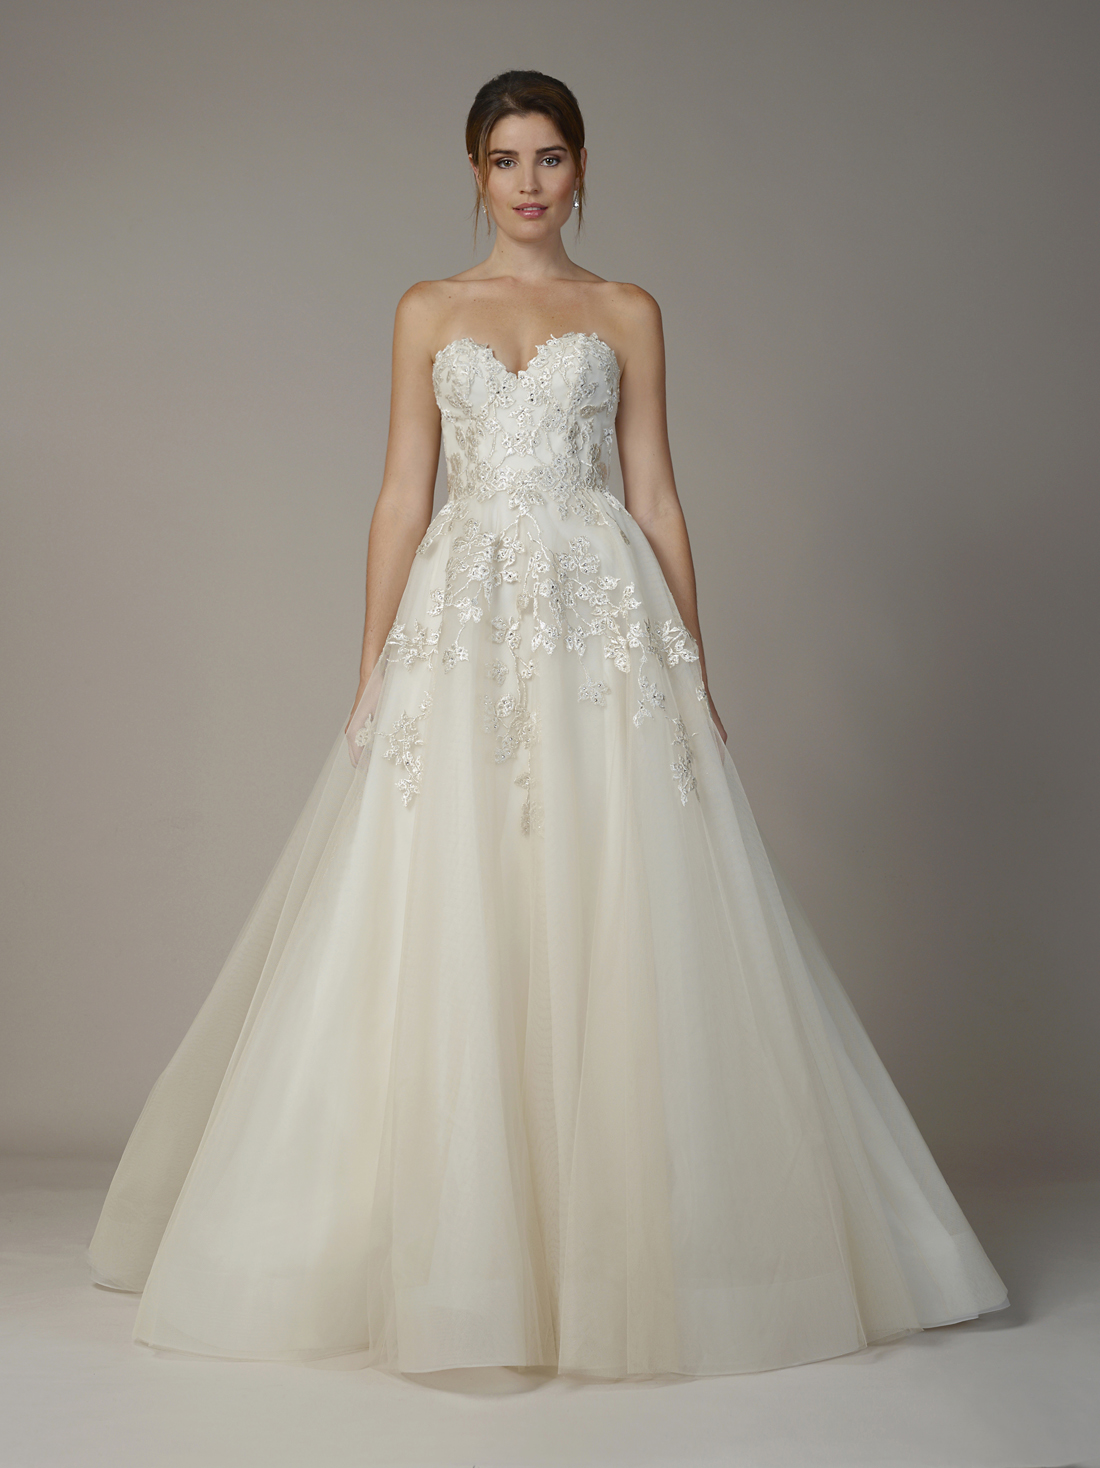 Champagne colored bridal gown Liancarlo sweetheart neckline